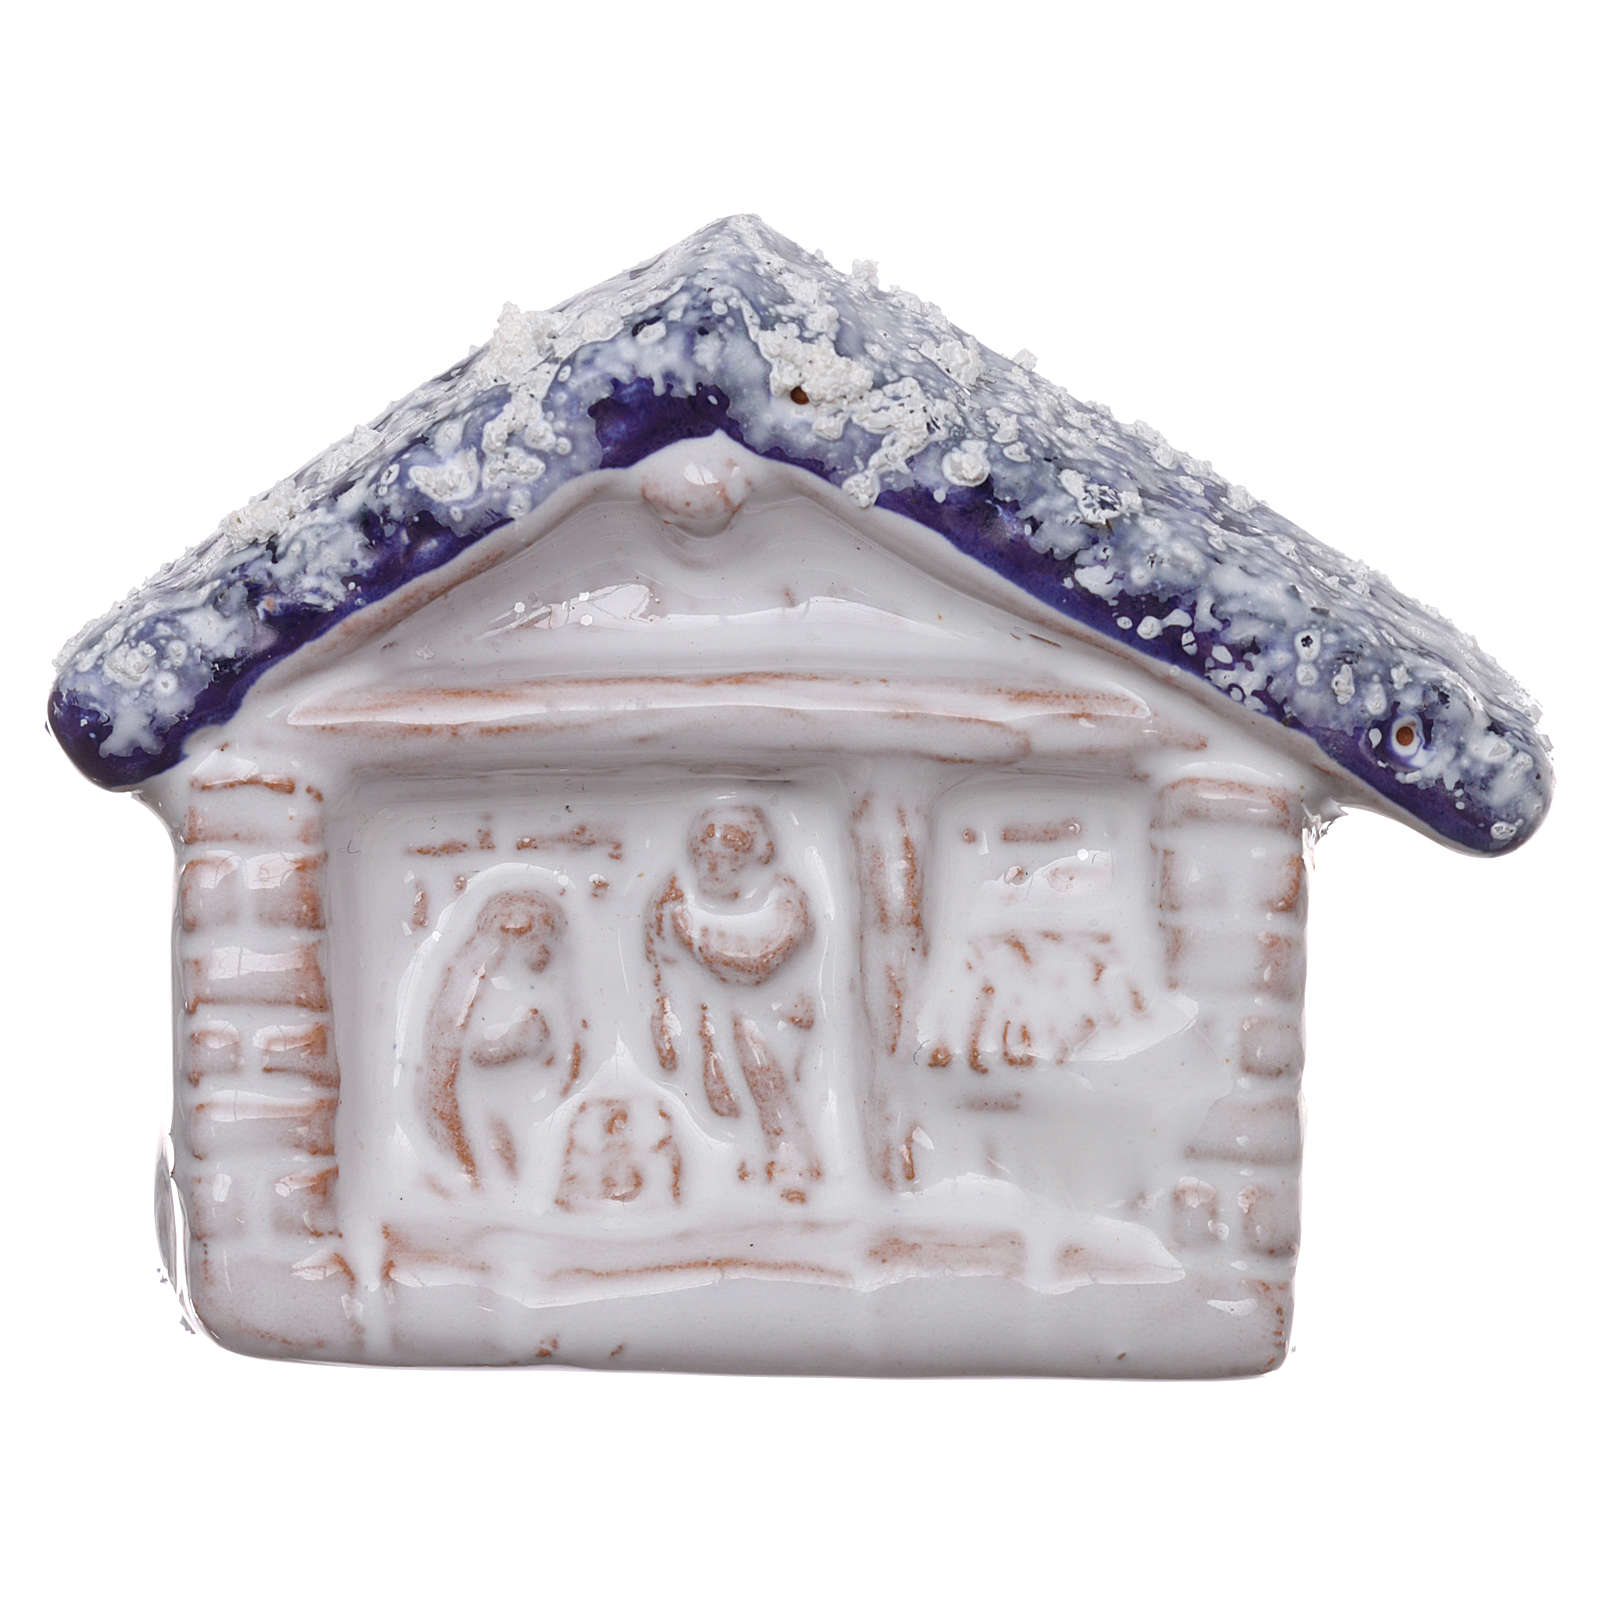 Magnet with hut and Nativity Scene in Deruta Terracotta 3